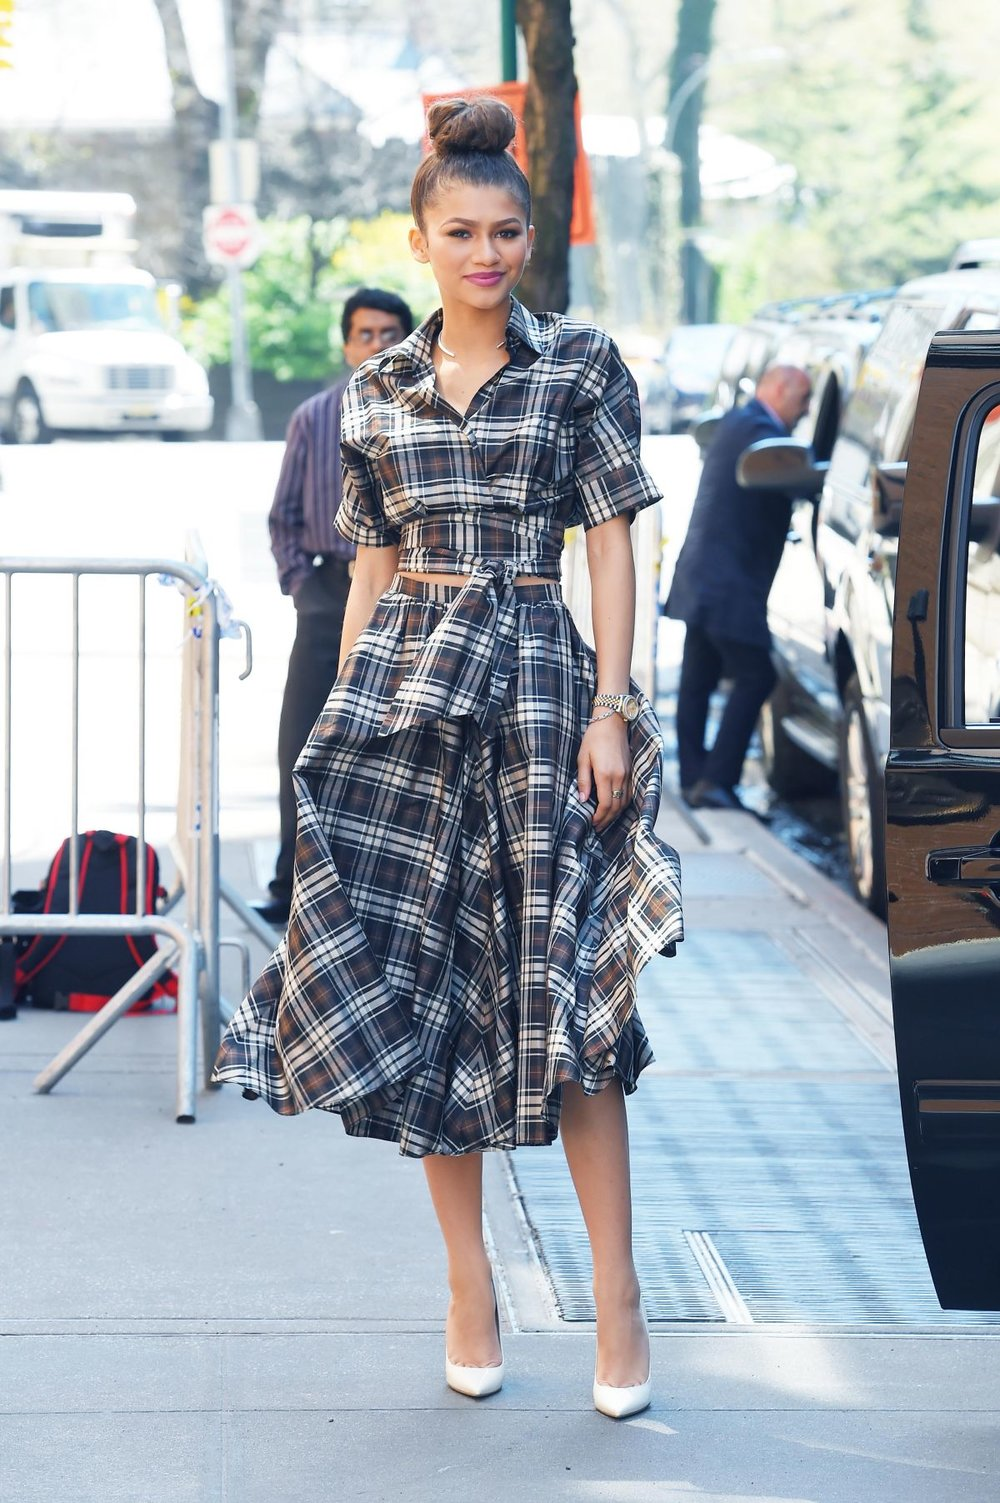 zendaya-coleman-arrives-at-the-view-in-new-york-04-22-2015_2.jpg